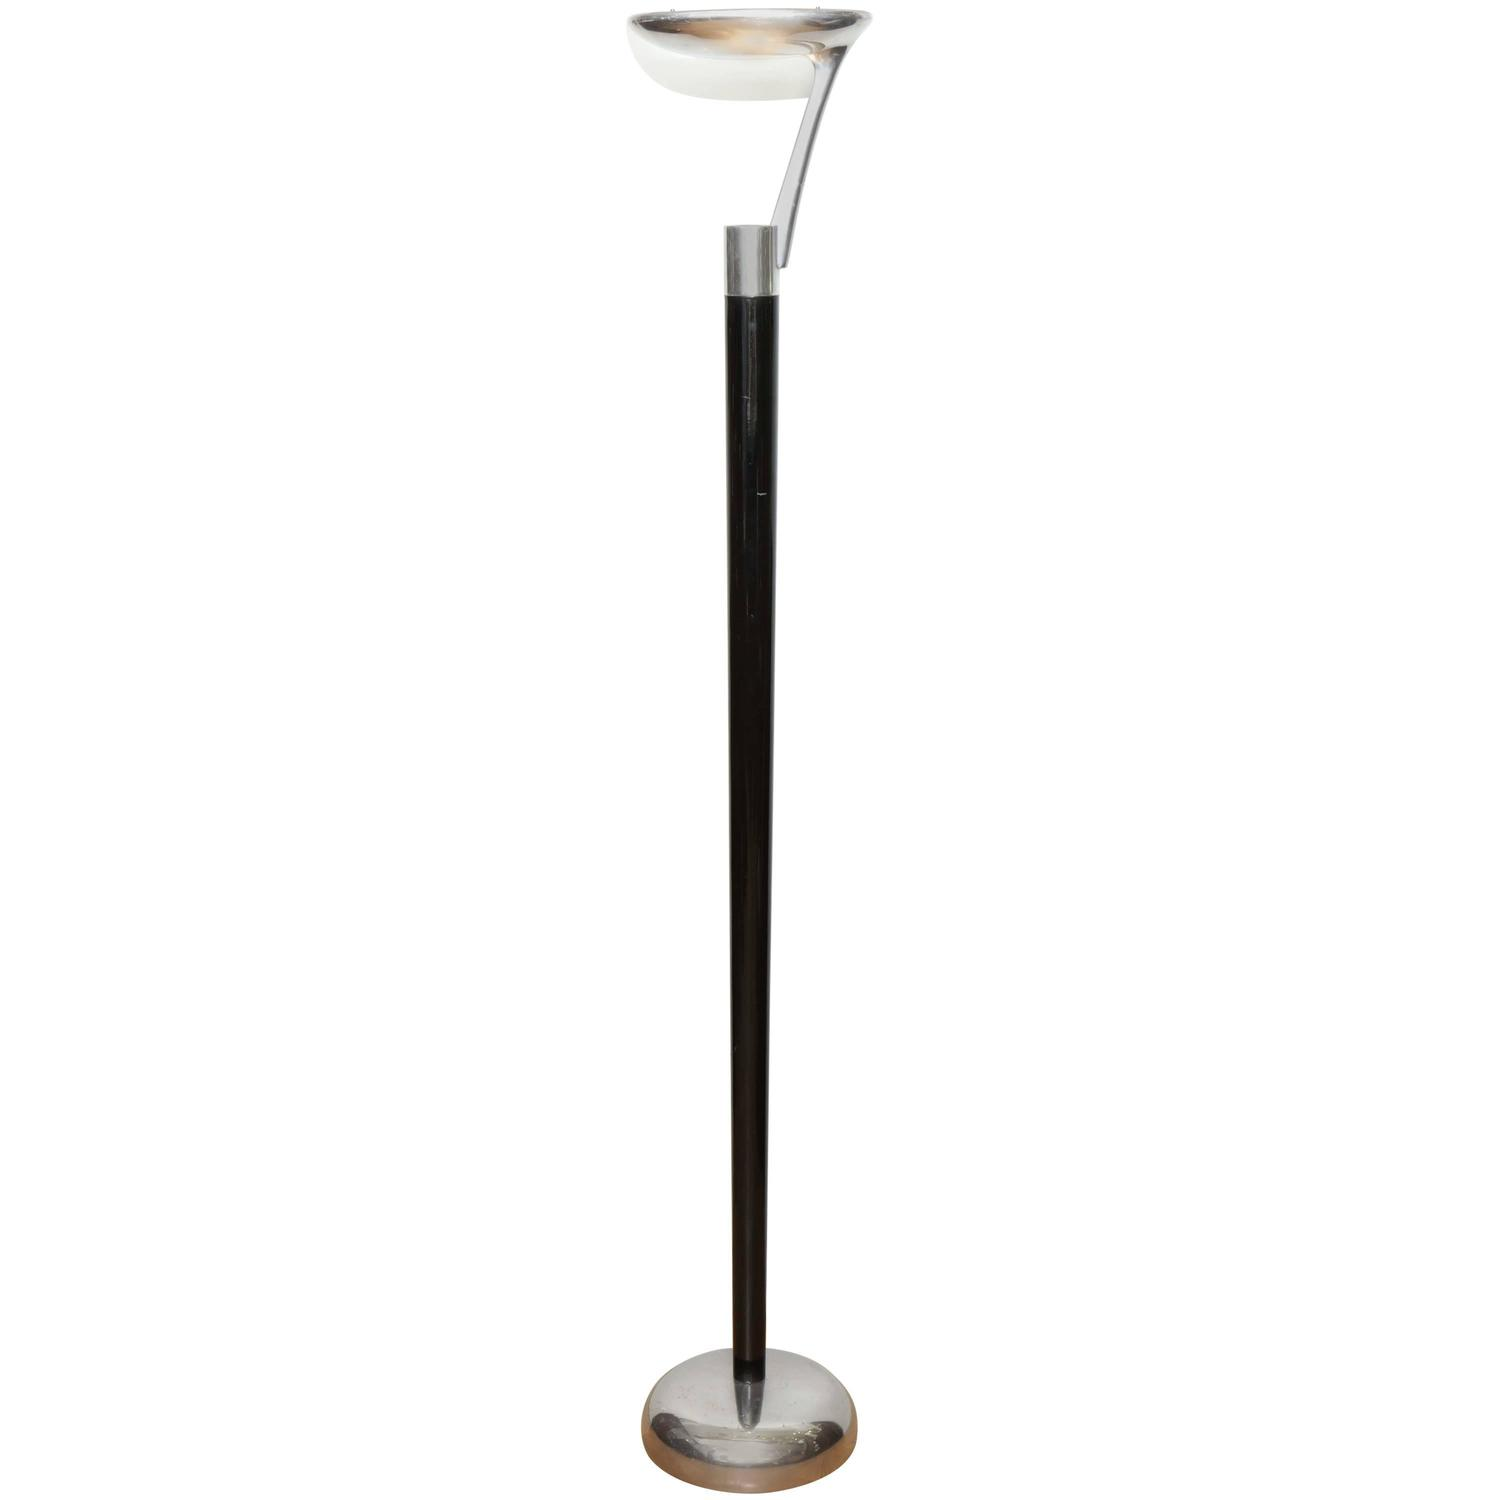 unique mid century modern floor lamp for sale at 1stdibs. Black Bedroom Furniture Sets. Home Design Ideas